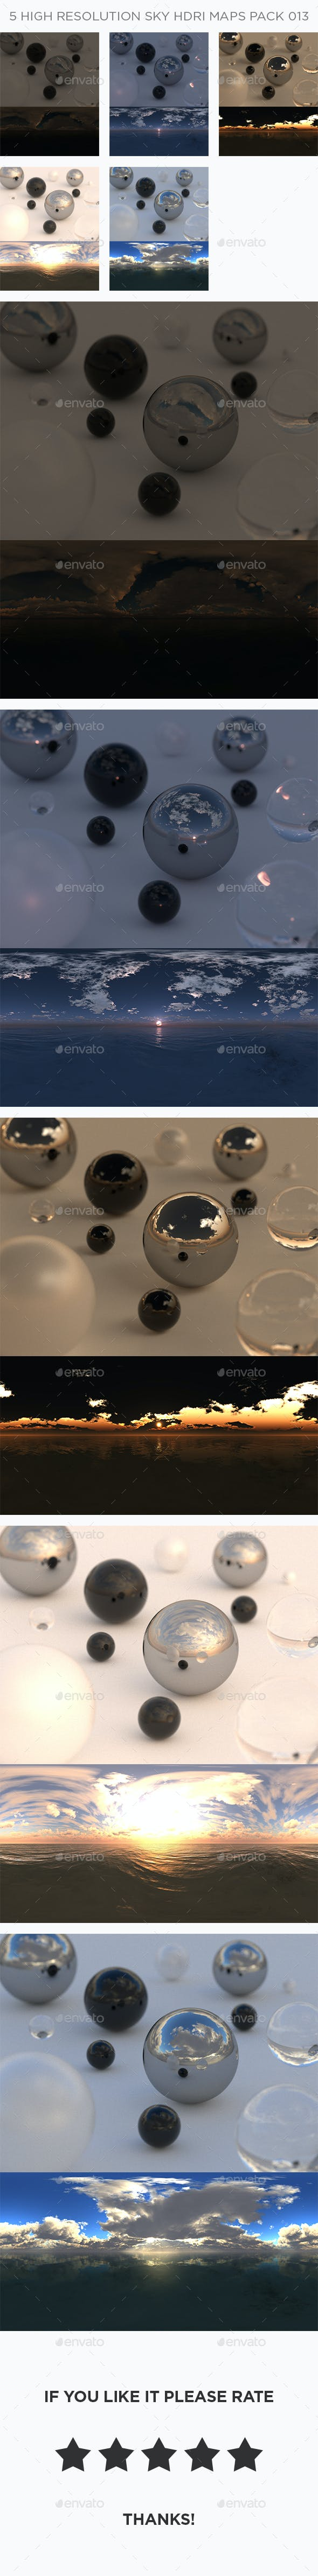 5 High Resolution Sky HDRi Maps Pack 013 - 3DOcean Item for Sale